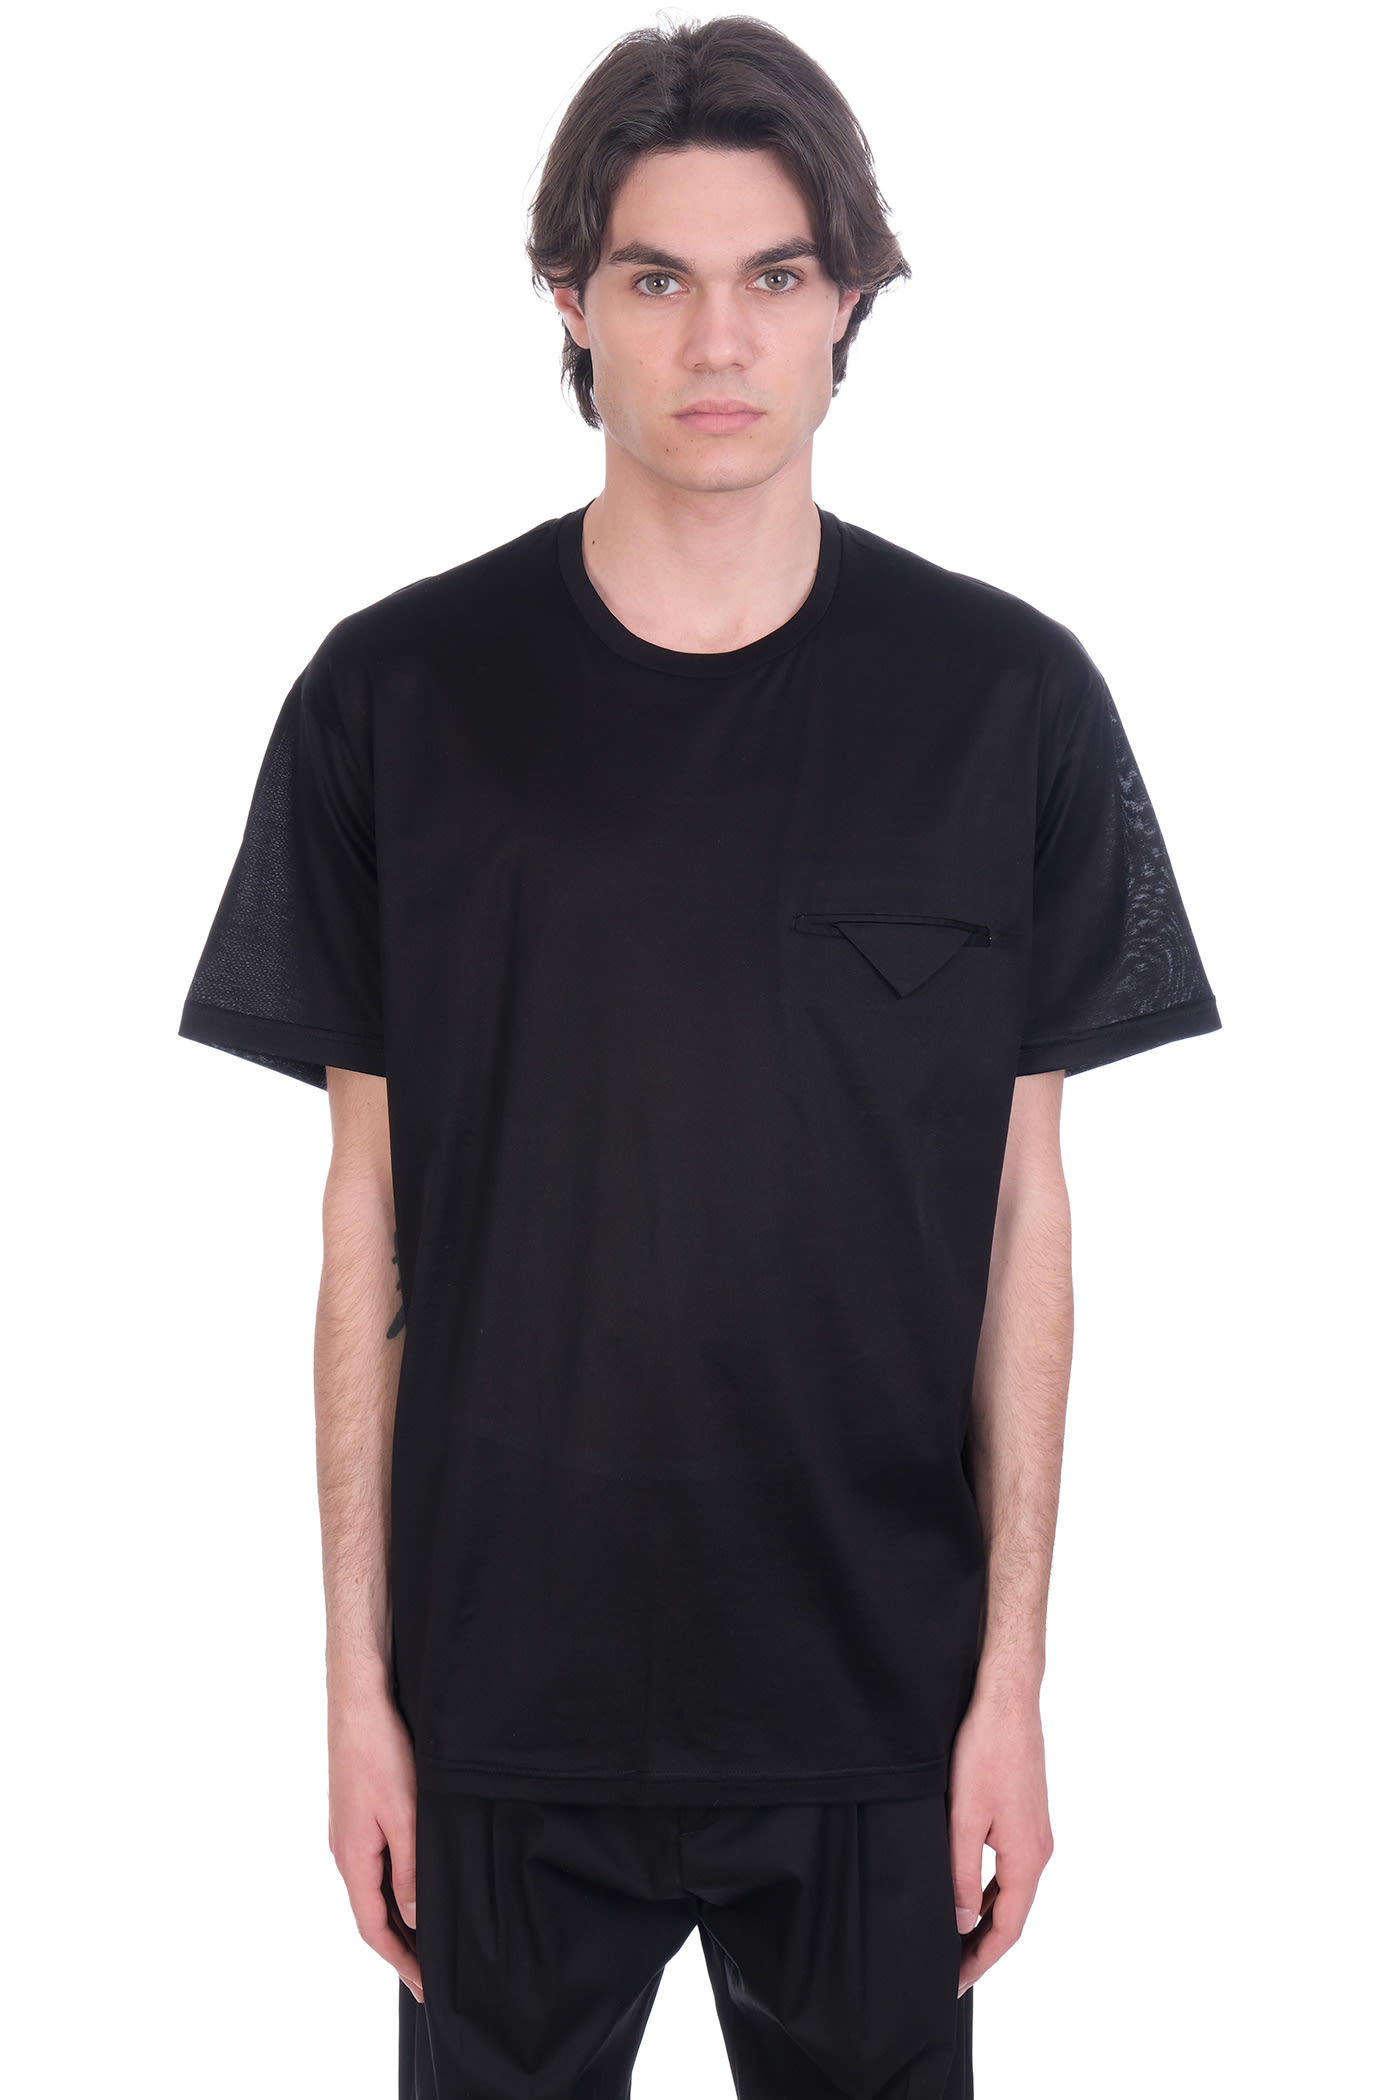 Low Brand T-shirt In Black Cotton